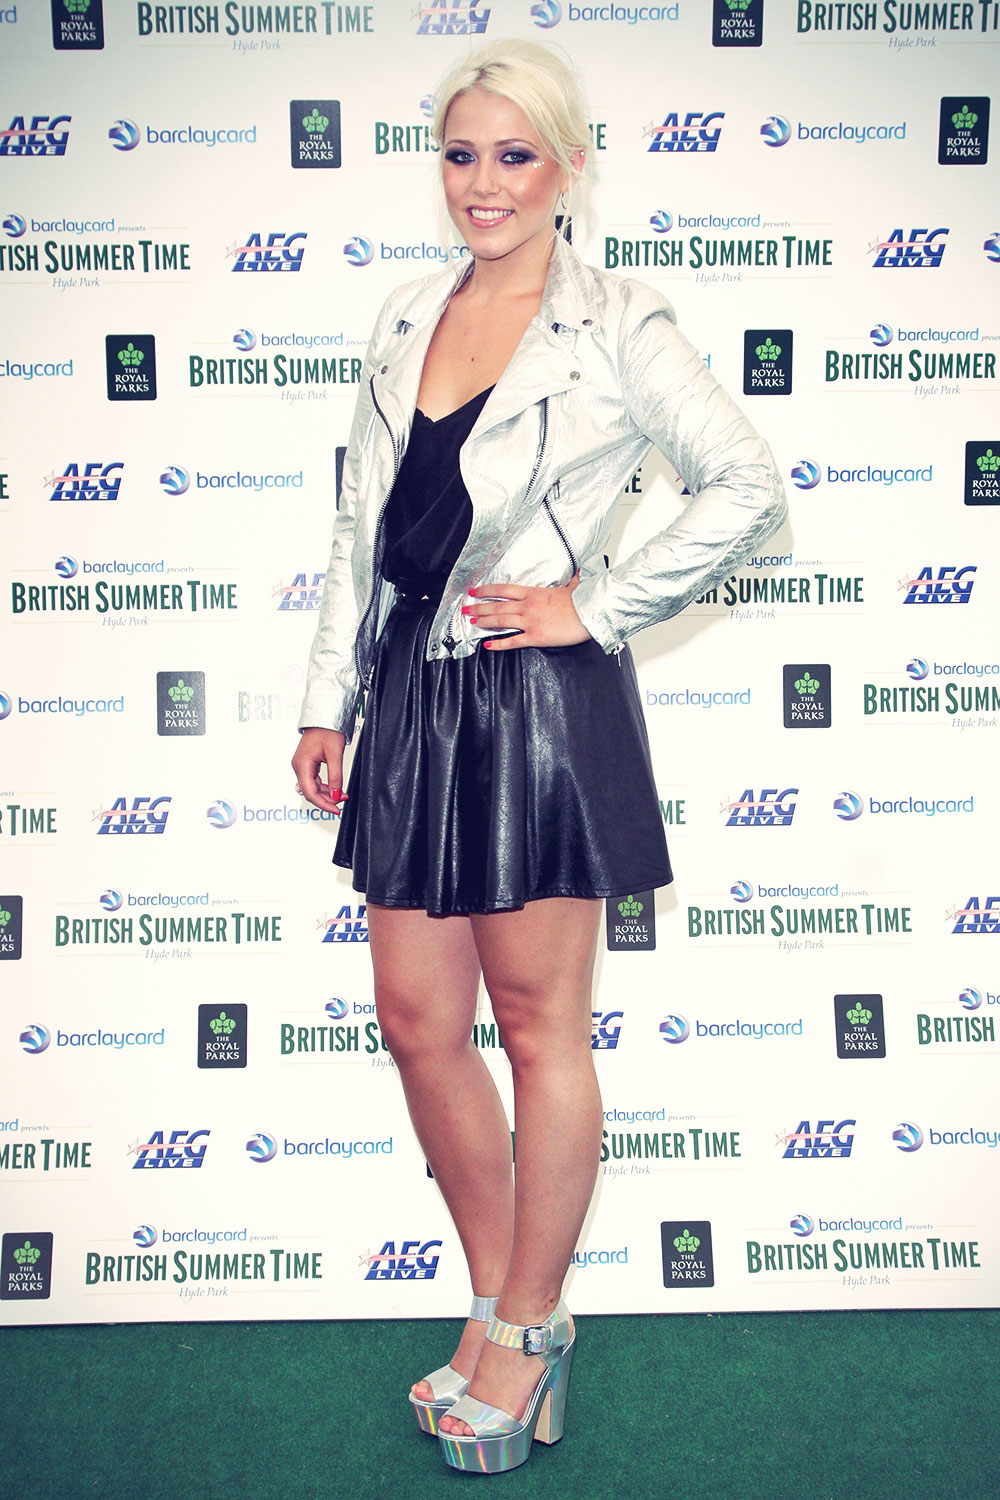 Amelia Lily backstage at British Summer Time Festival